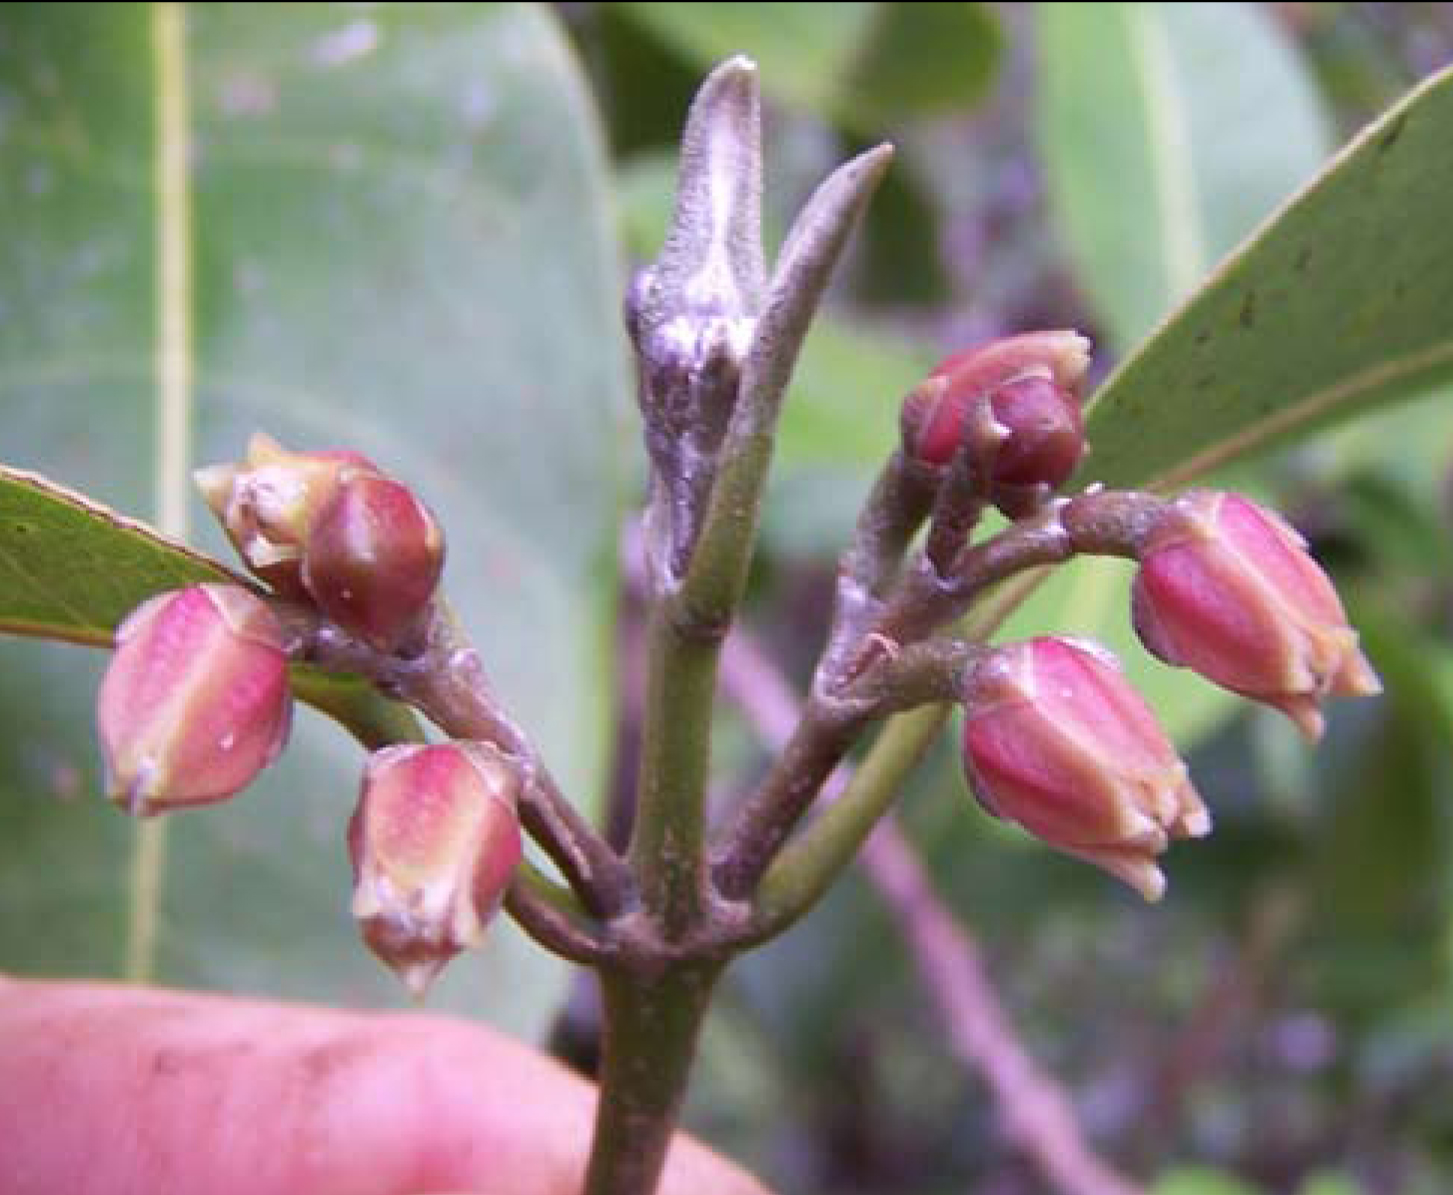 Newly named hawaiian tree species already critically endangered newly named hawaiian tree species already critically endangered smithsonian insider izmirmasajfo